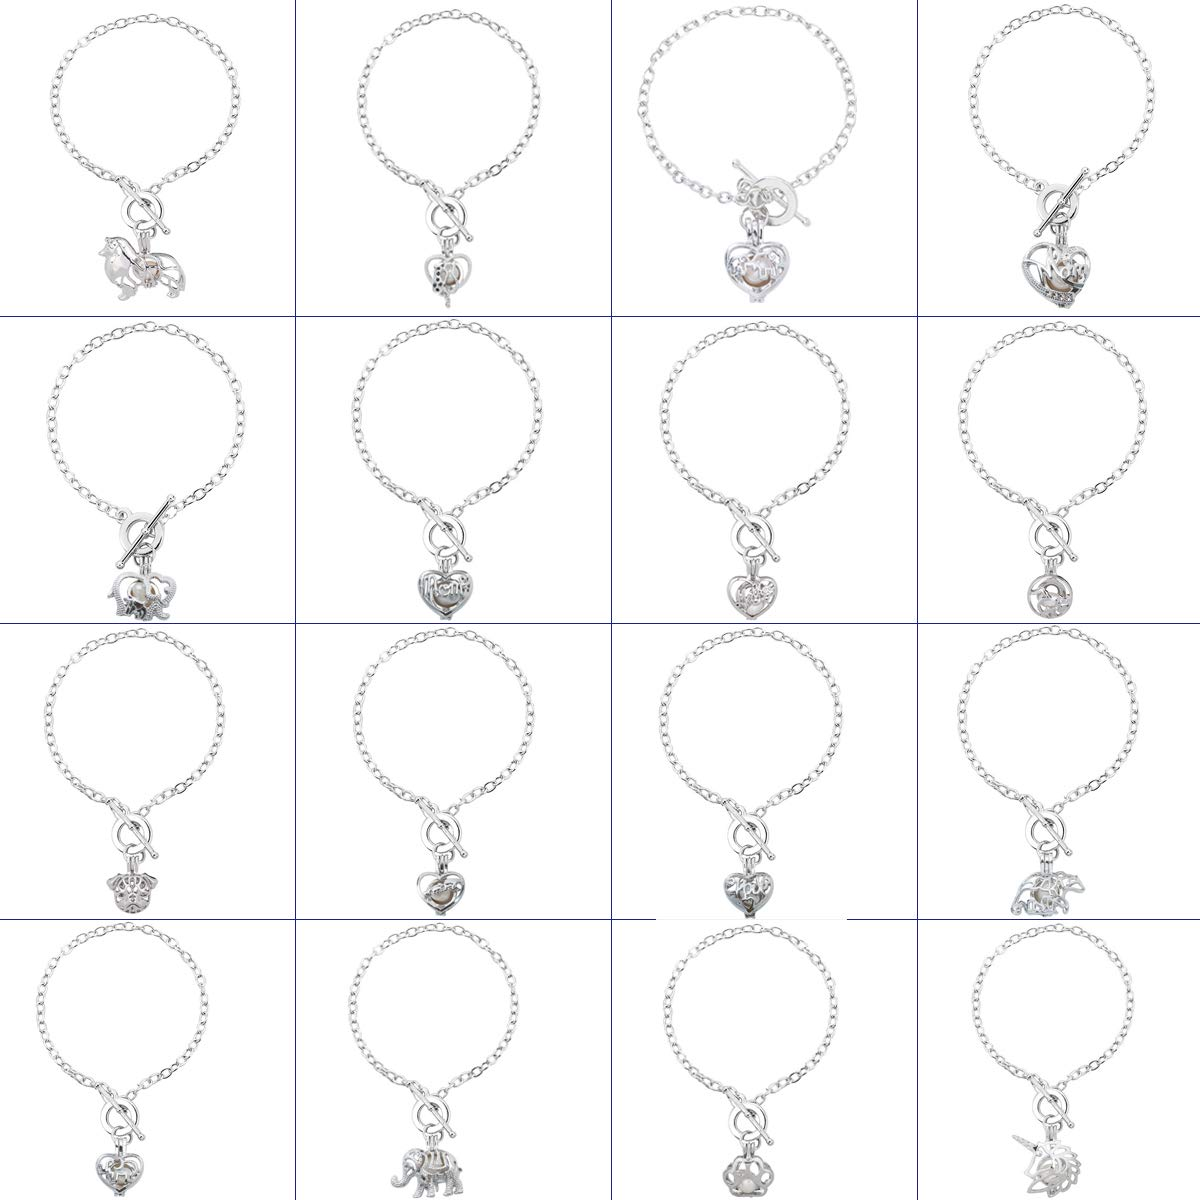 HENGSHENG 16 PCS Bracelet Sets Pearl Oyster Fitting with 1 PC Real Oval Pearl in Pendant